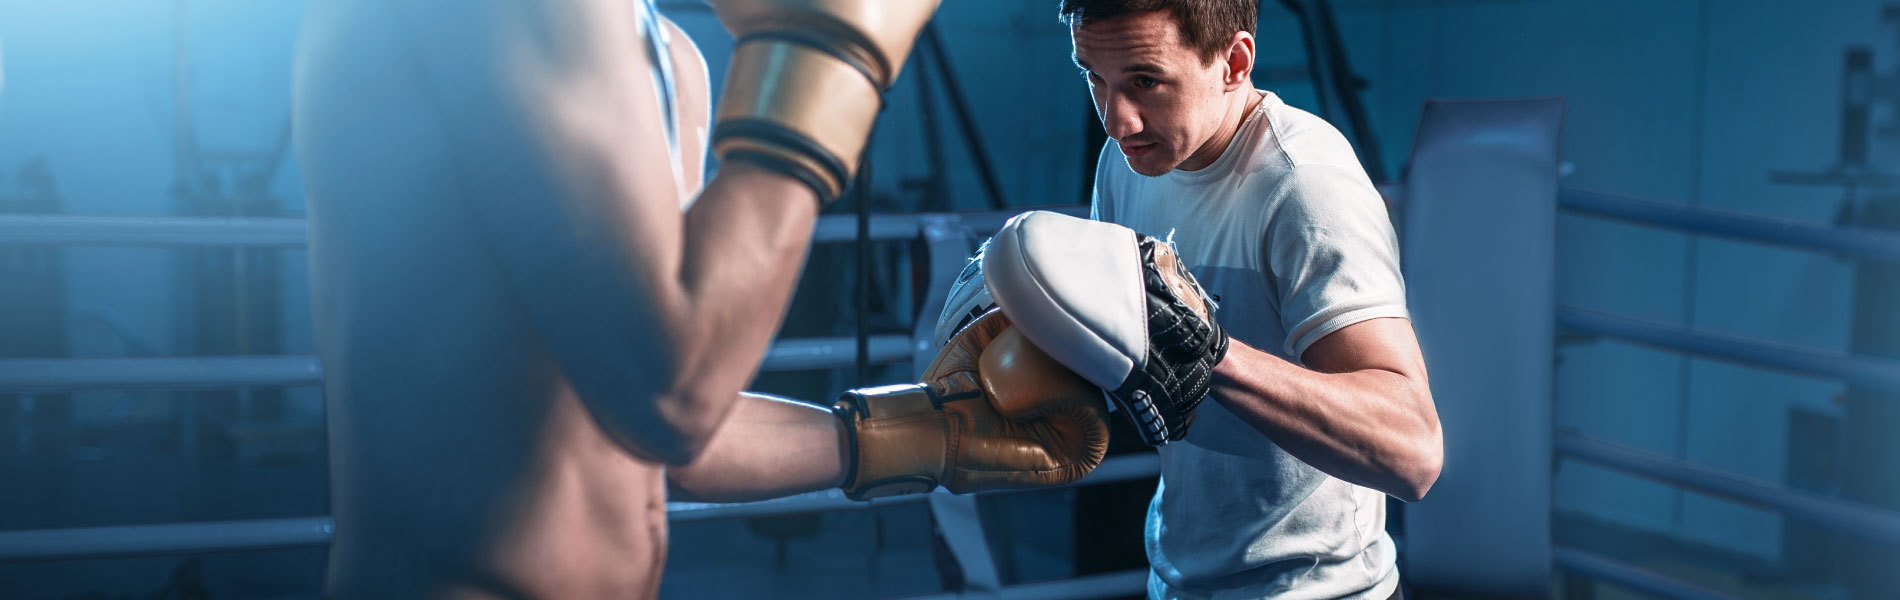 The Benefits of Sparring at your Martial Arts School